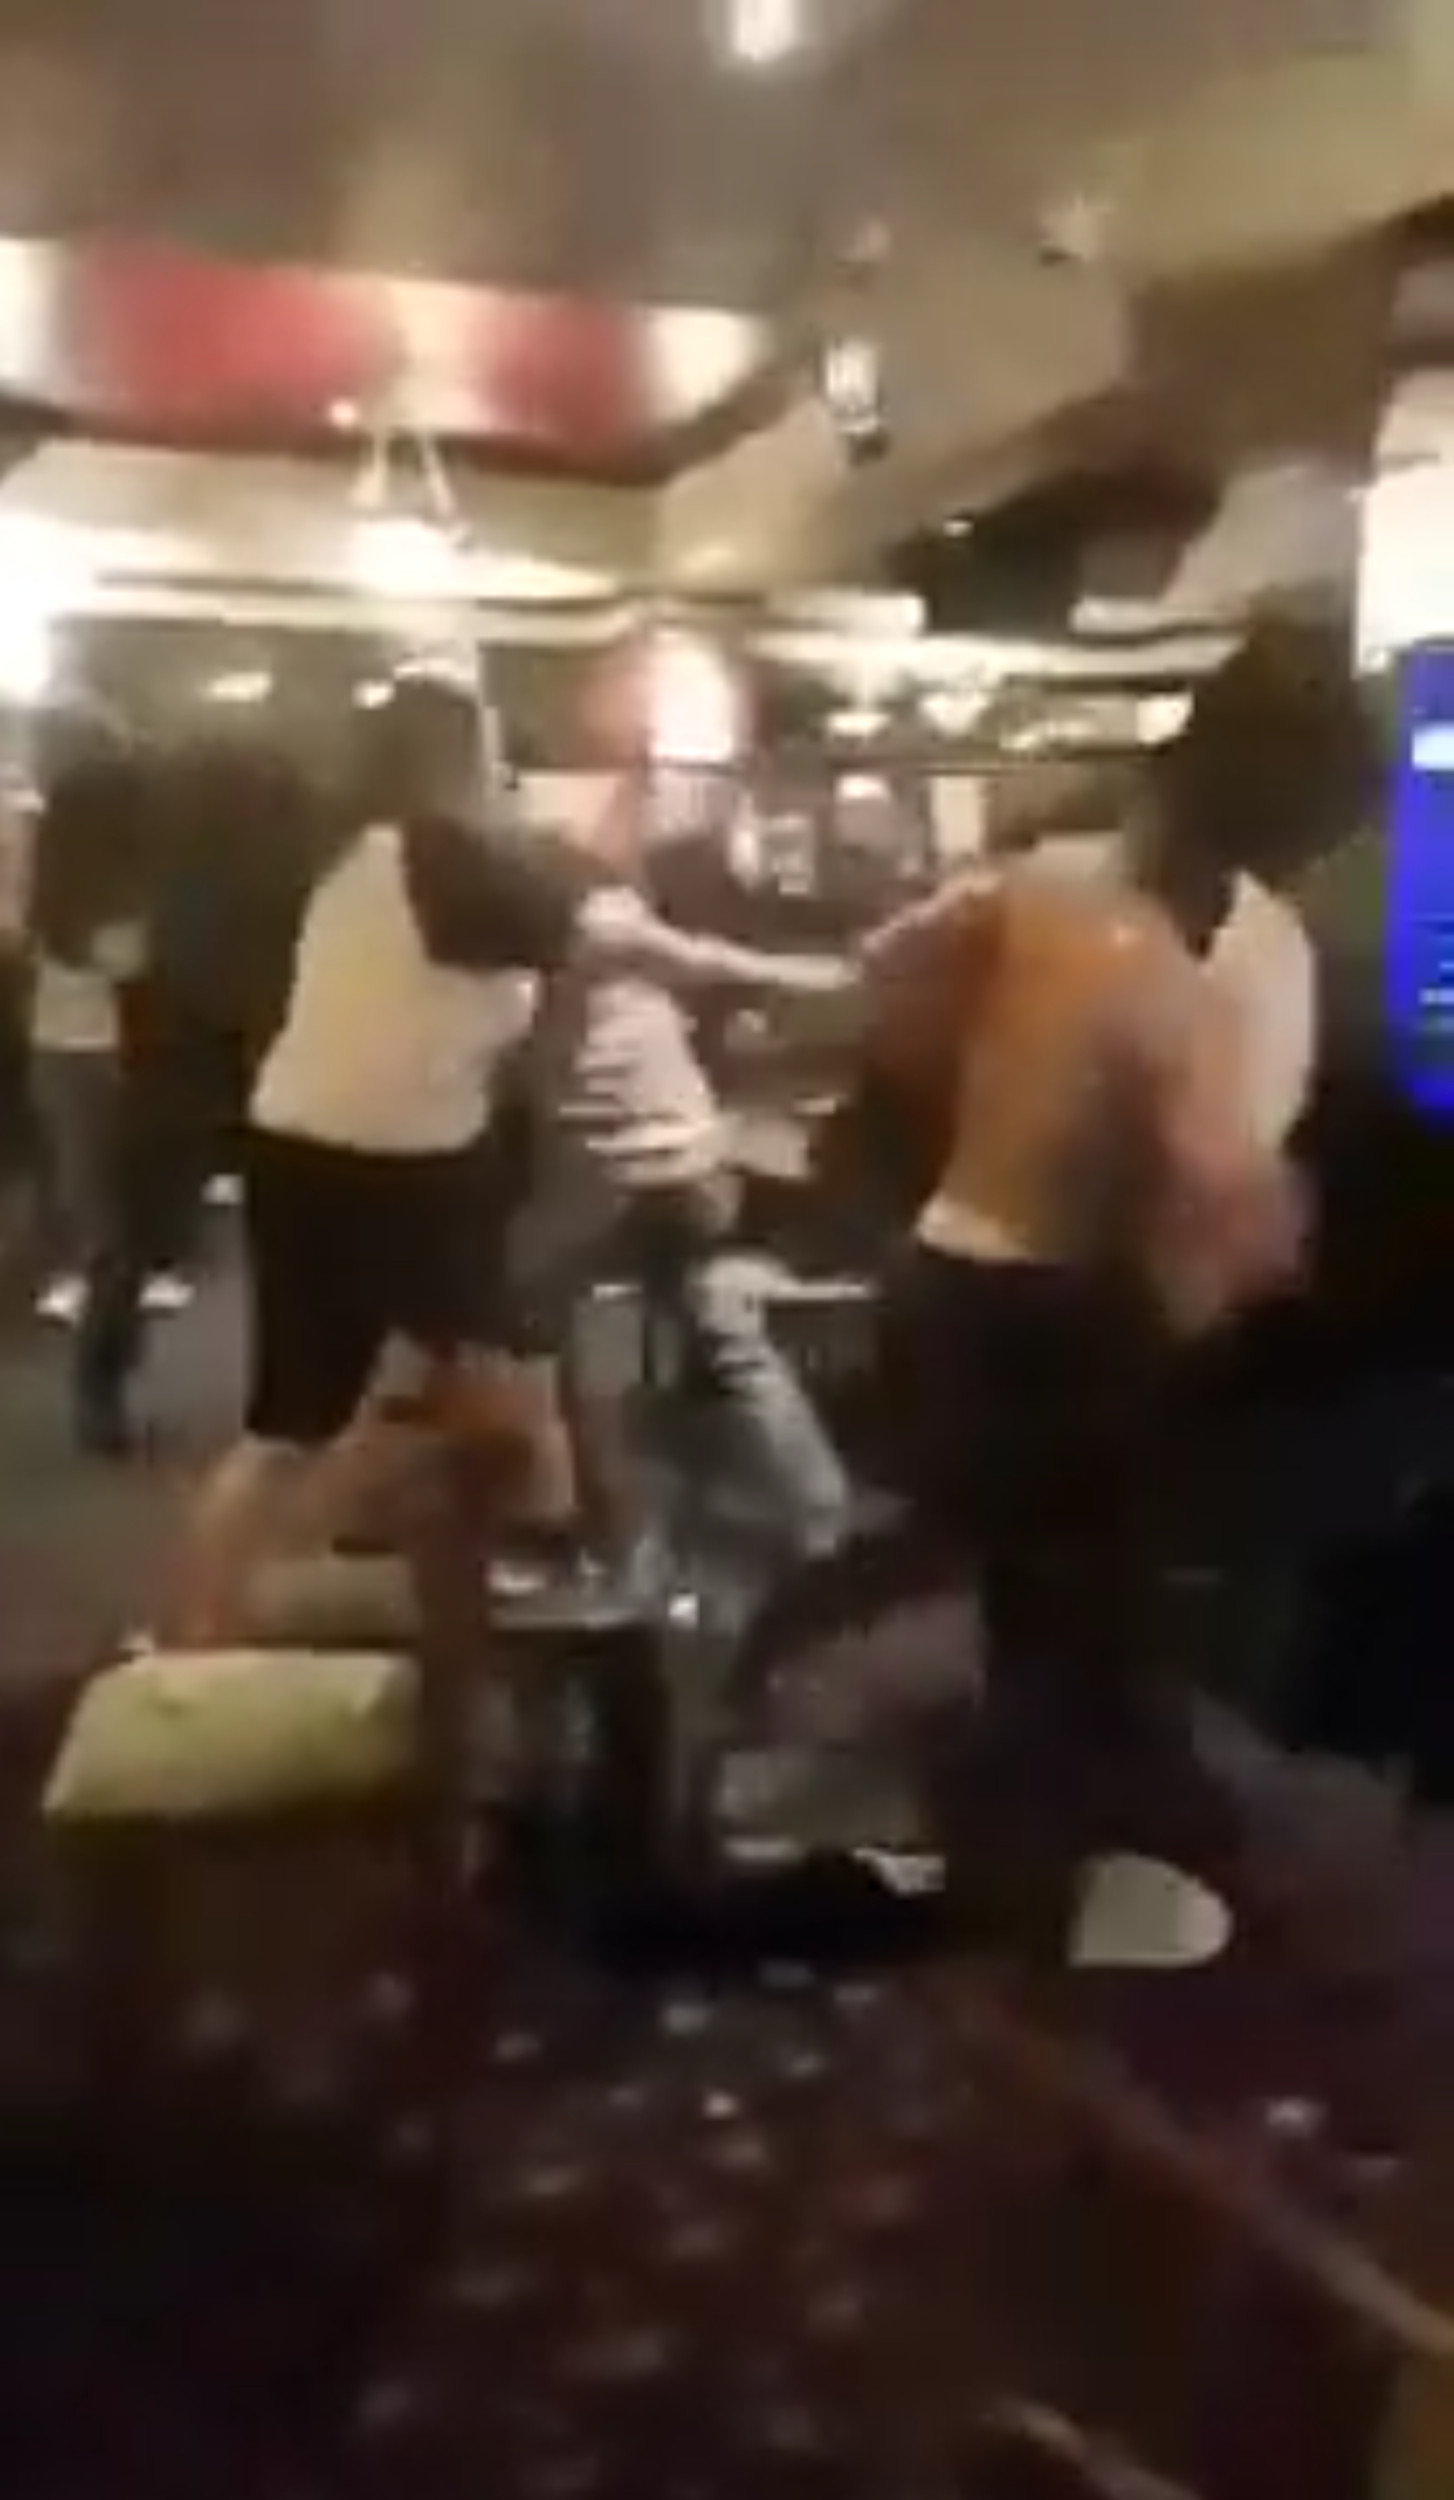 One man can be seen with his shirt taken off as the chaos continues- Deadline News